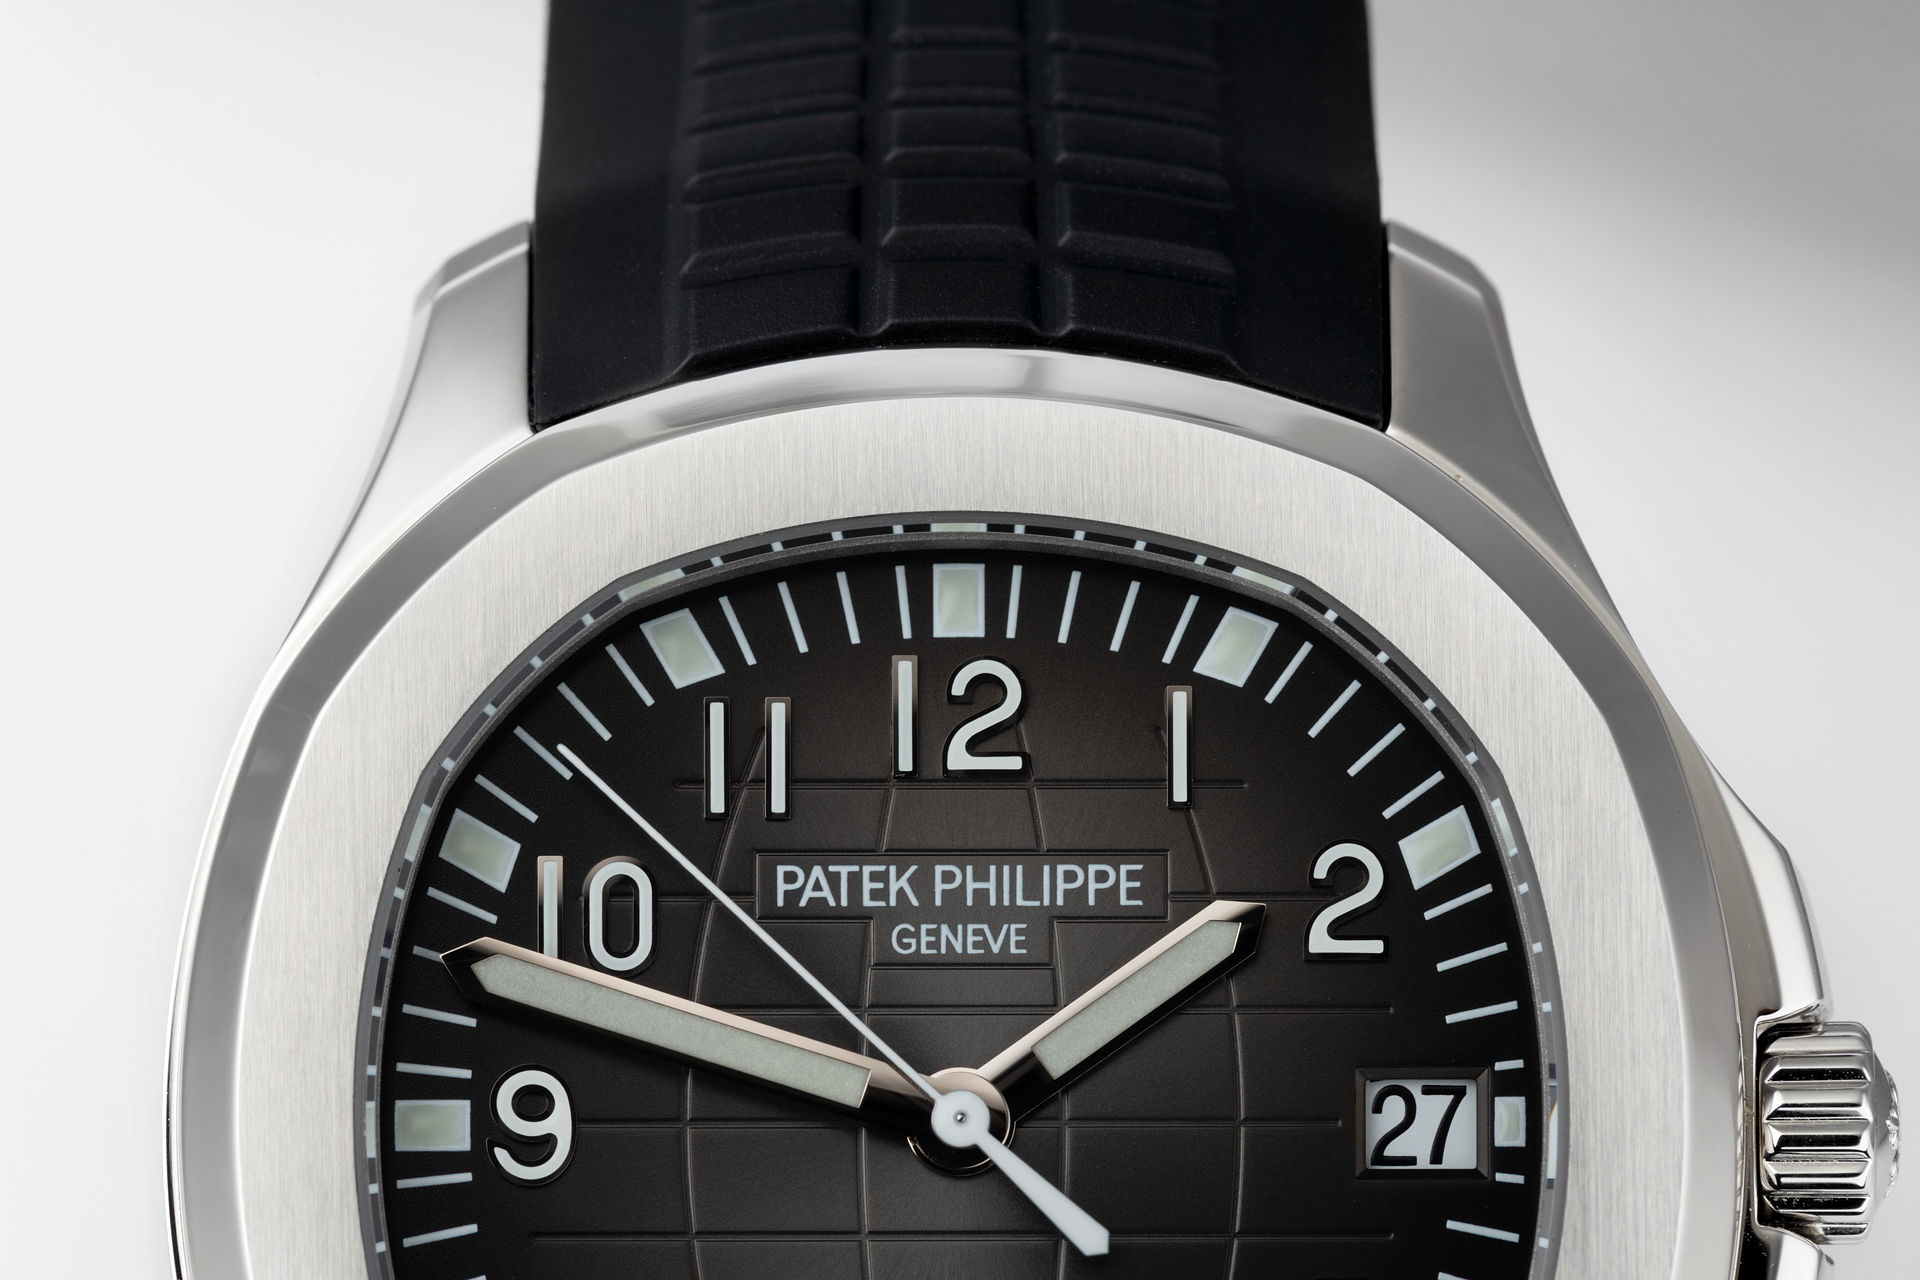 ref 5167A-001 | Full Set Jumbo | Patek Philippe Aquanaut